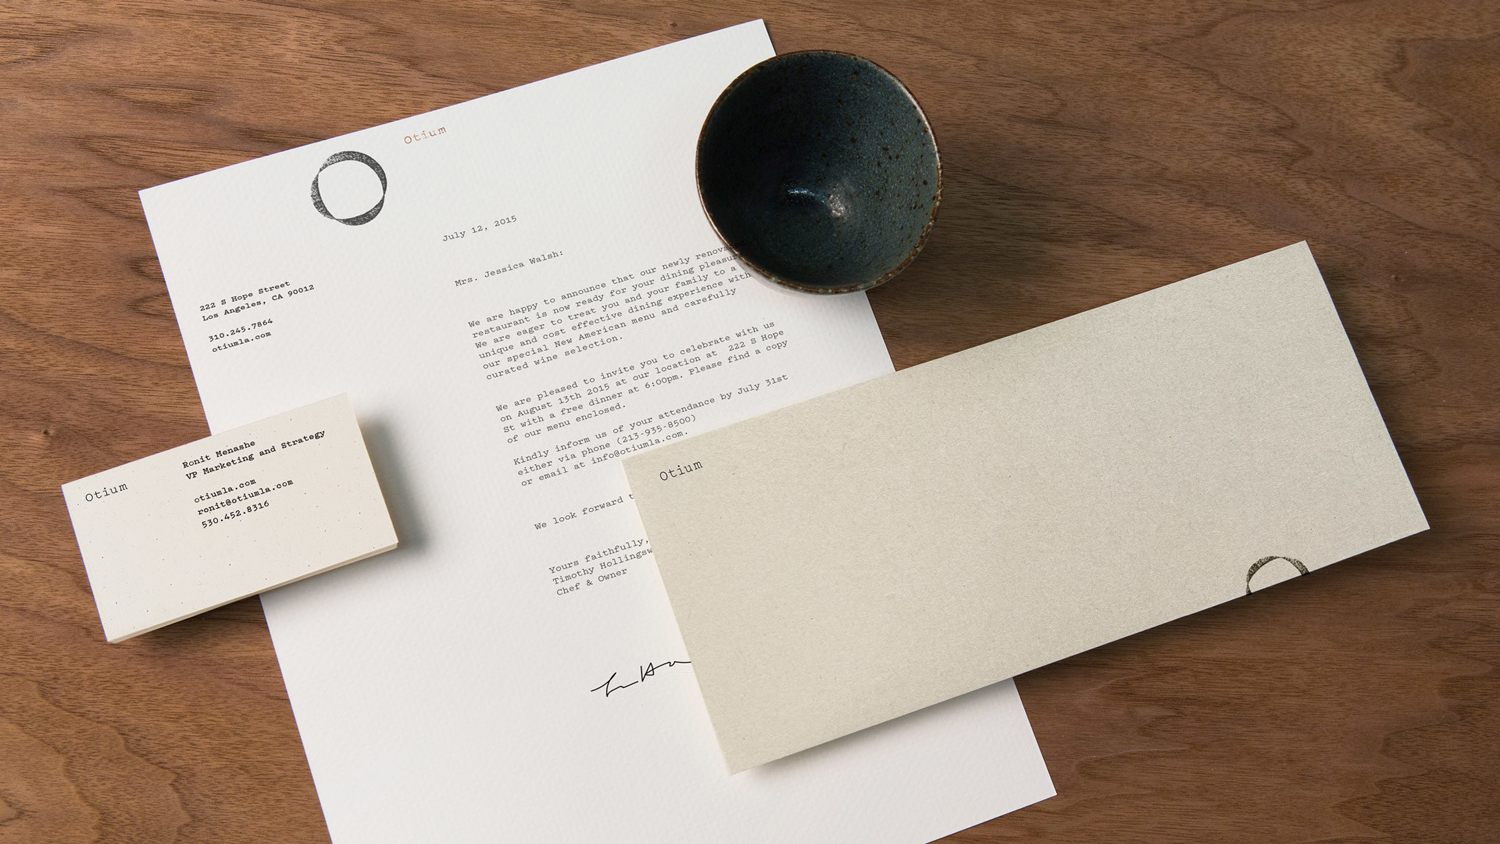 Logo, letterhead and business cards by Sagmeister & Walsh for contemporary restaurant Otium